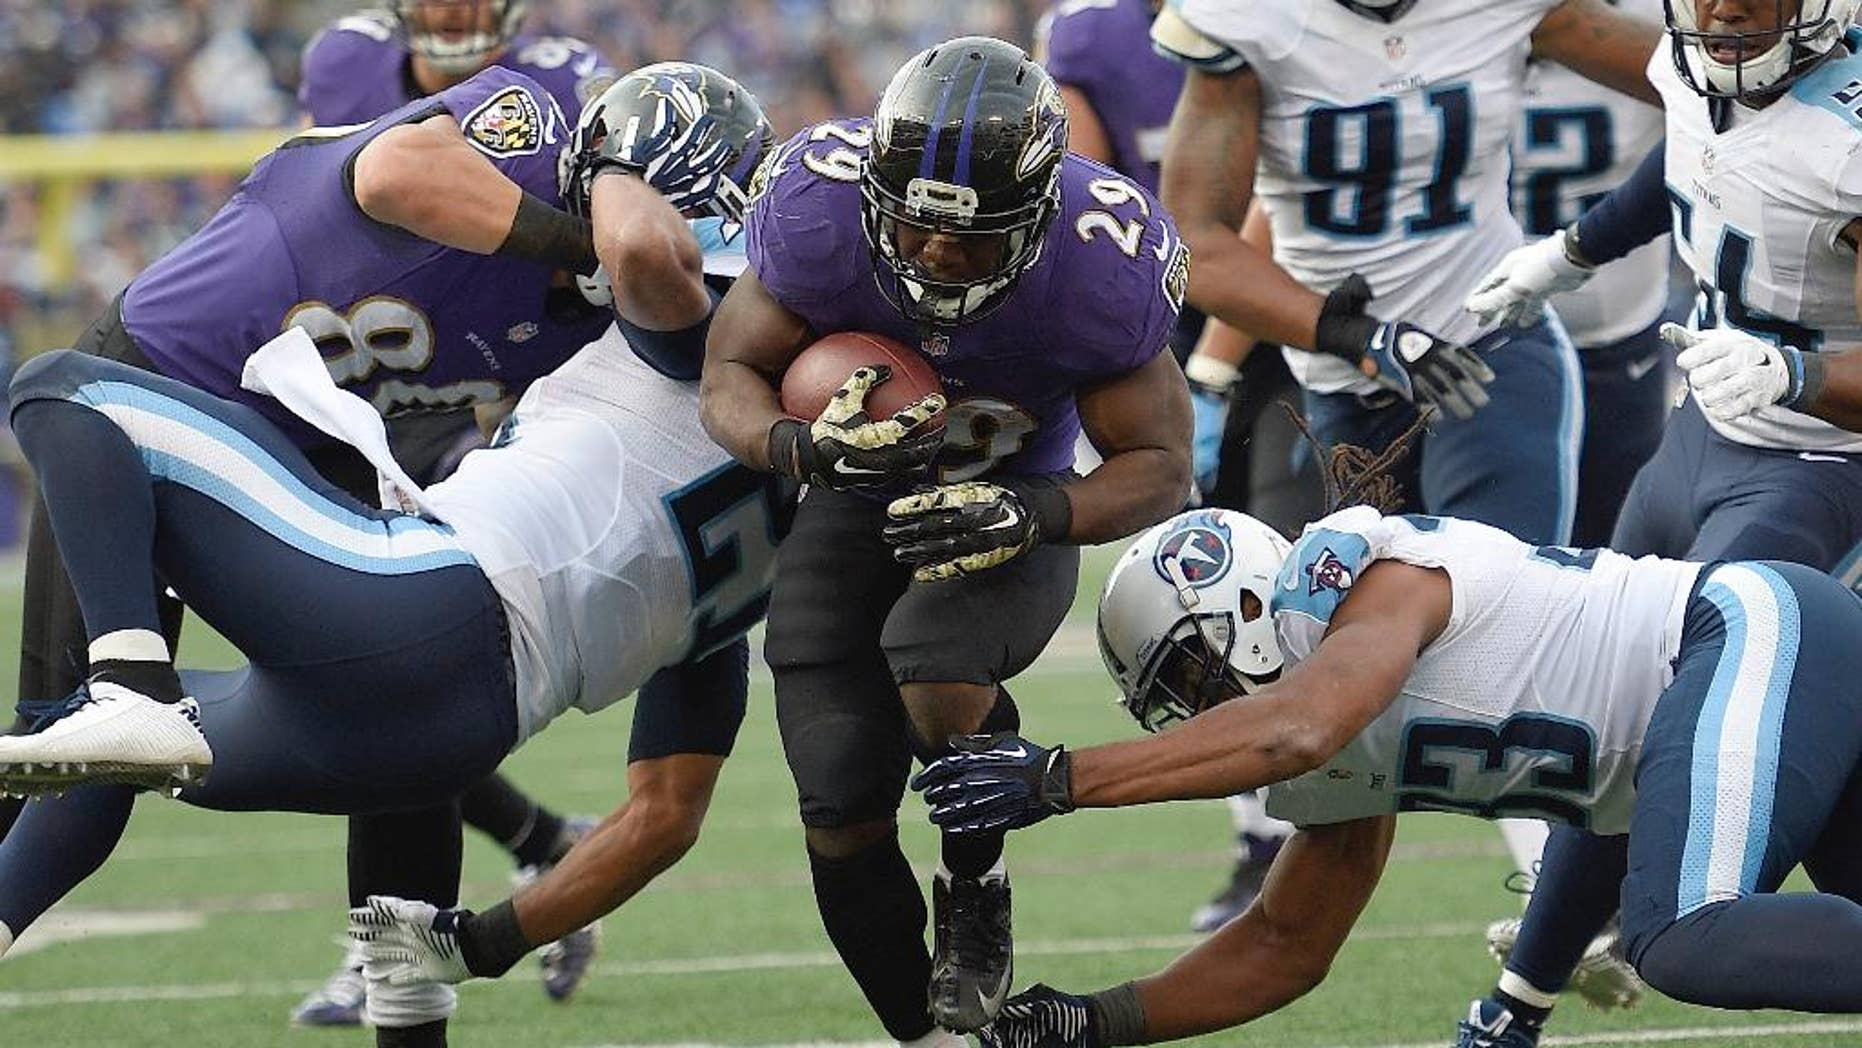 Baltimore Ravens running back Justin Forsett (29) slips past Tennessee Titans free safety Michael Griffin (33) and runs for a touchdown during the second half of an NFL football game in Baltimore, Sunday, Nov. 9, 2014. (AP Photo/Nick Wass)